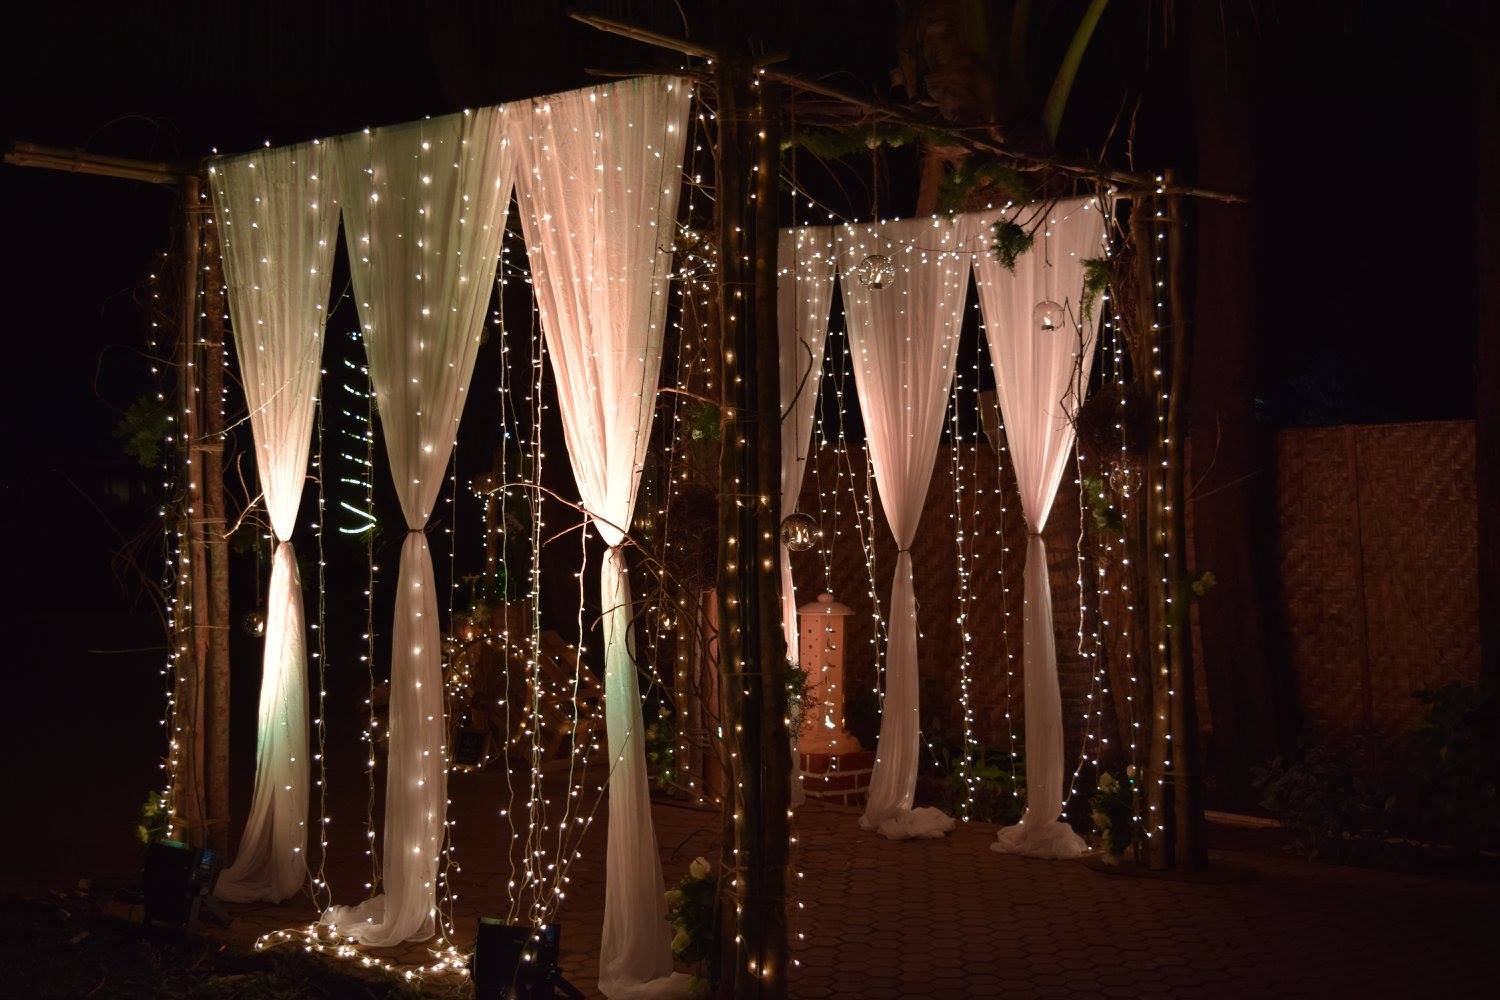 Saying it all with fairy lights!